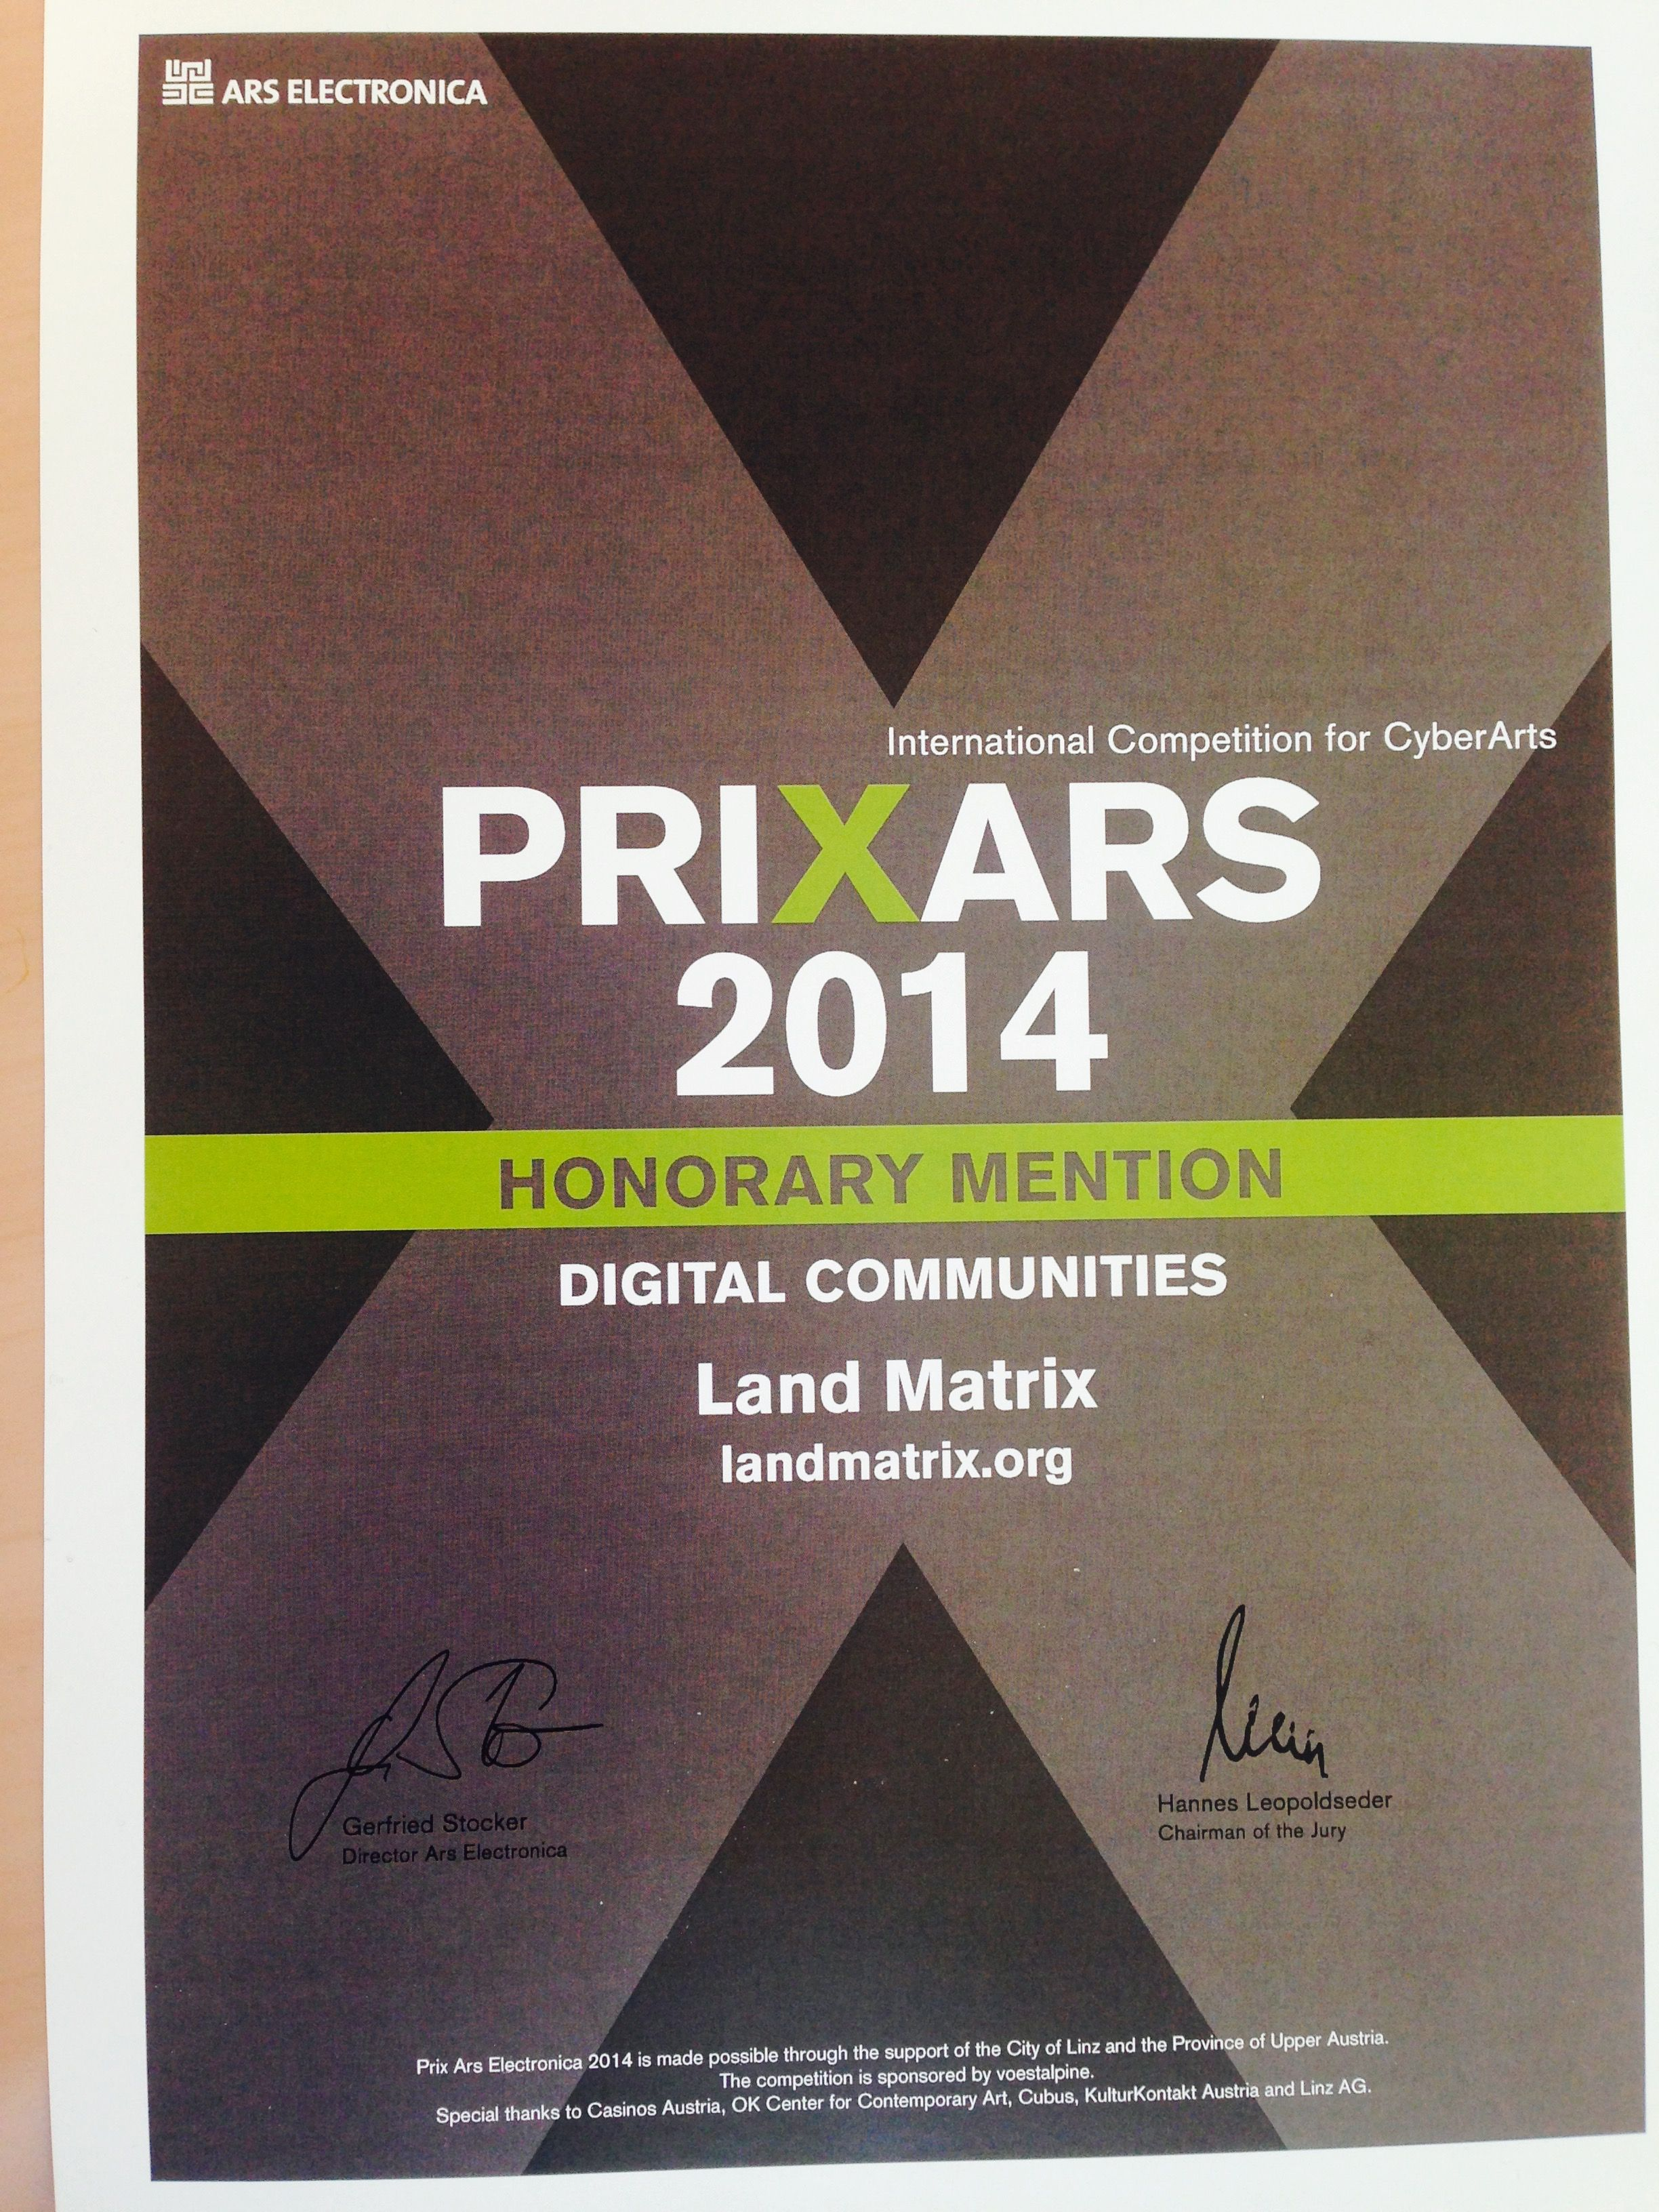 Prixars 2014 Honorary Mention